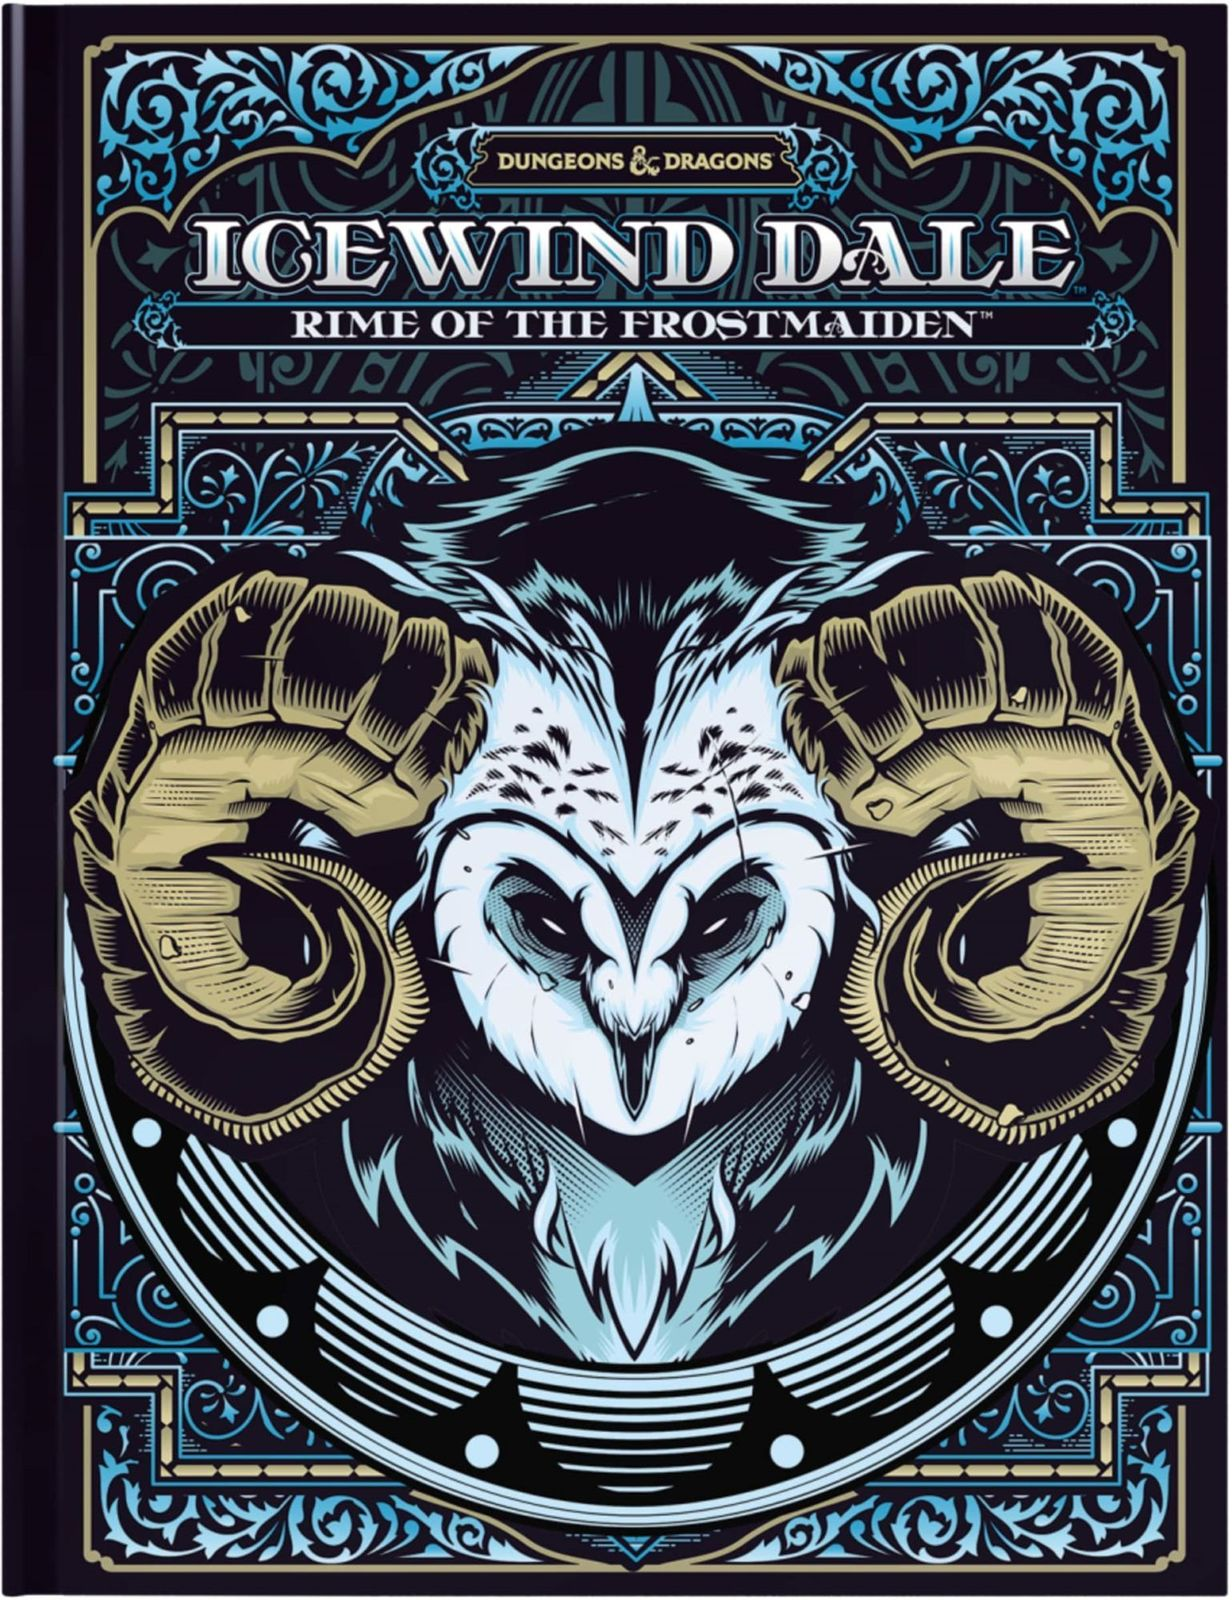 Dungeons & Dragons Icewind Dale: Rime of the Frostmaiden (Exclusive Cover) by Wizards RPG Team image